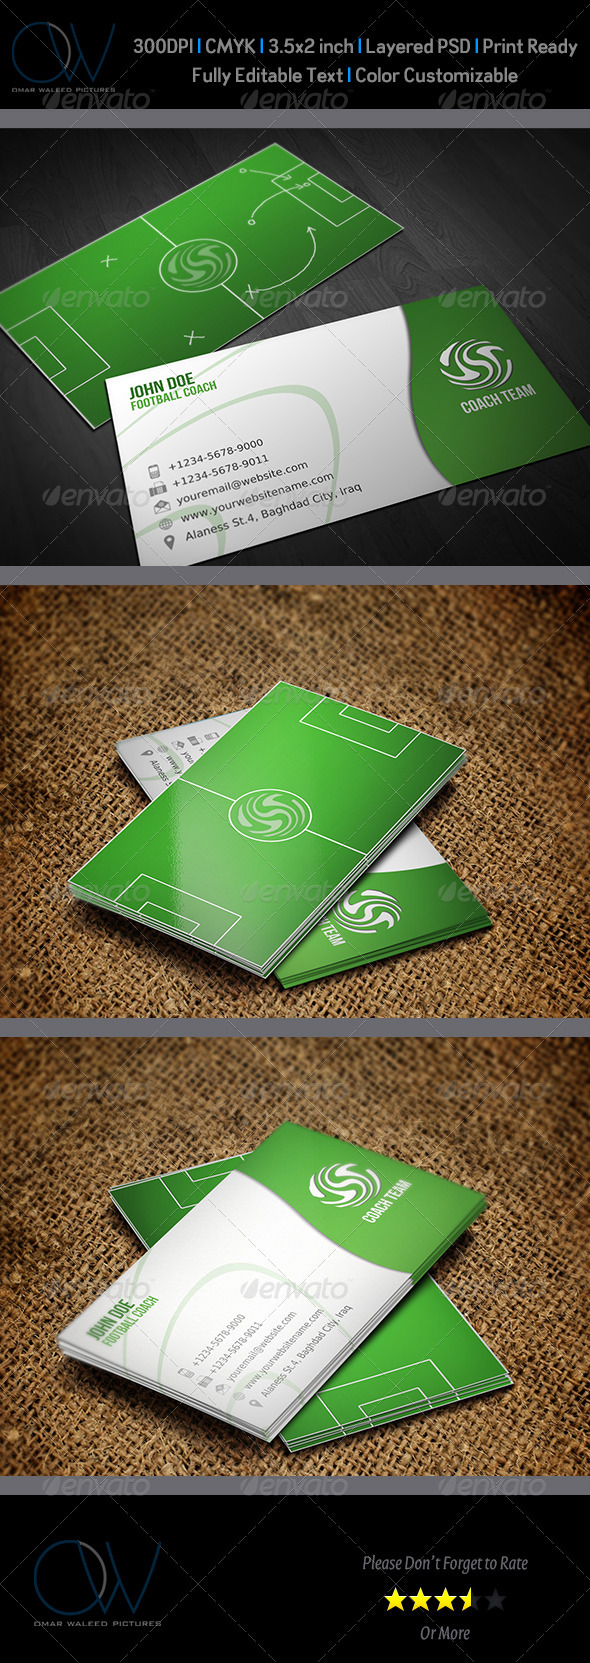 Football Coach Business Card by OWPictures | GraphicRiver